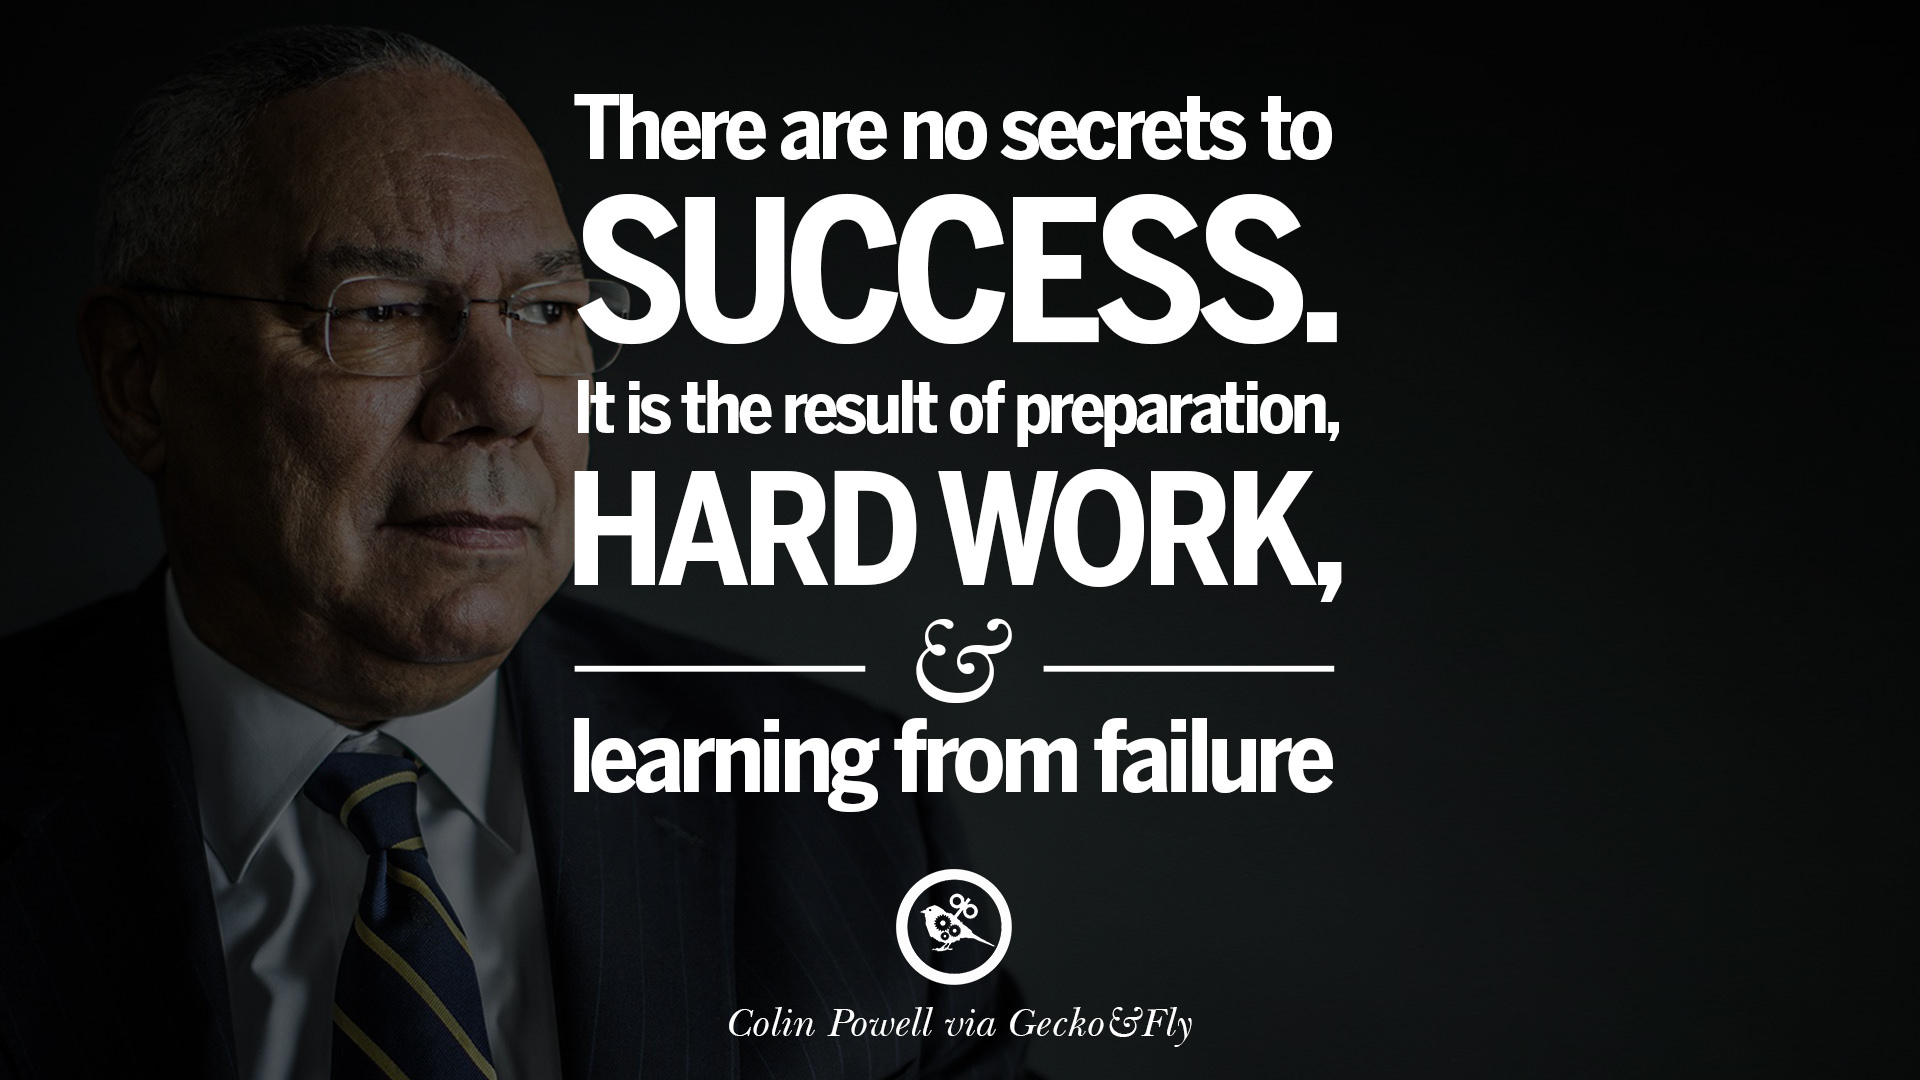 inspirational quotes about success and failure viewing